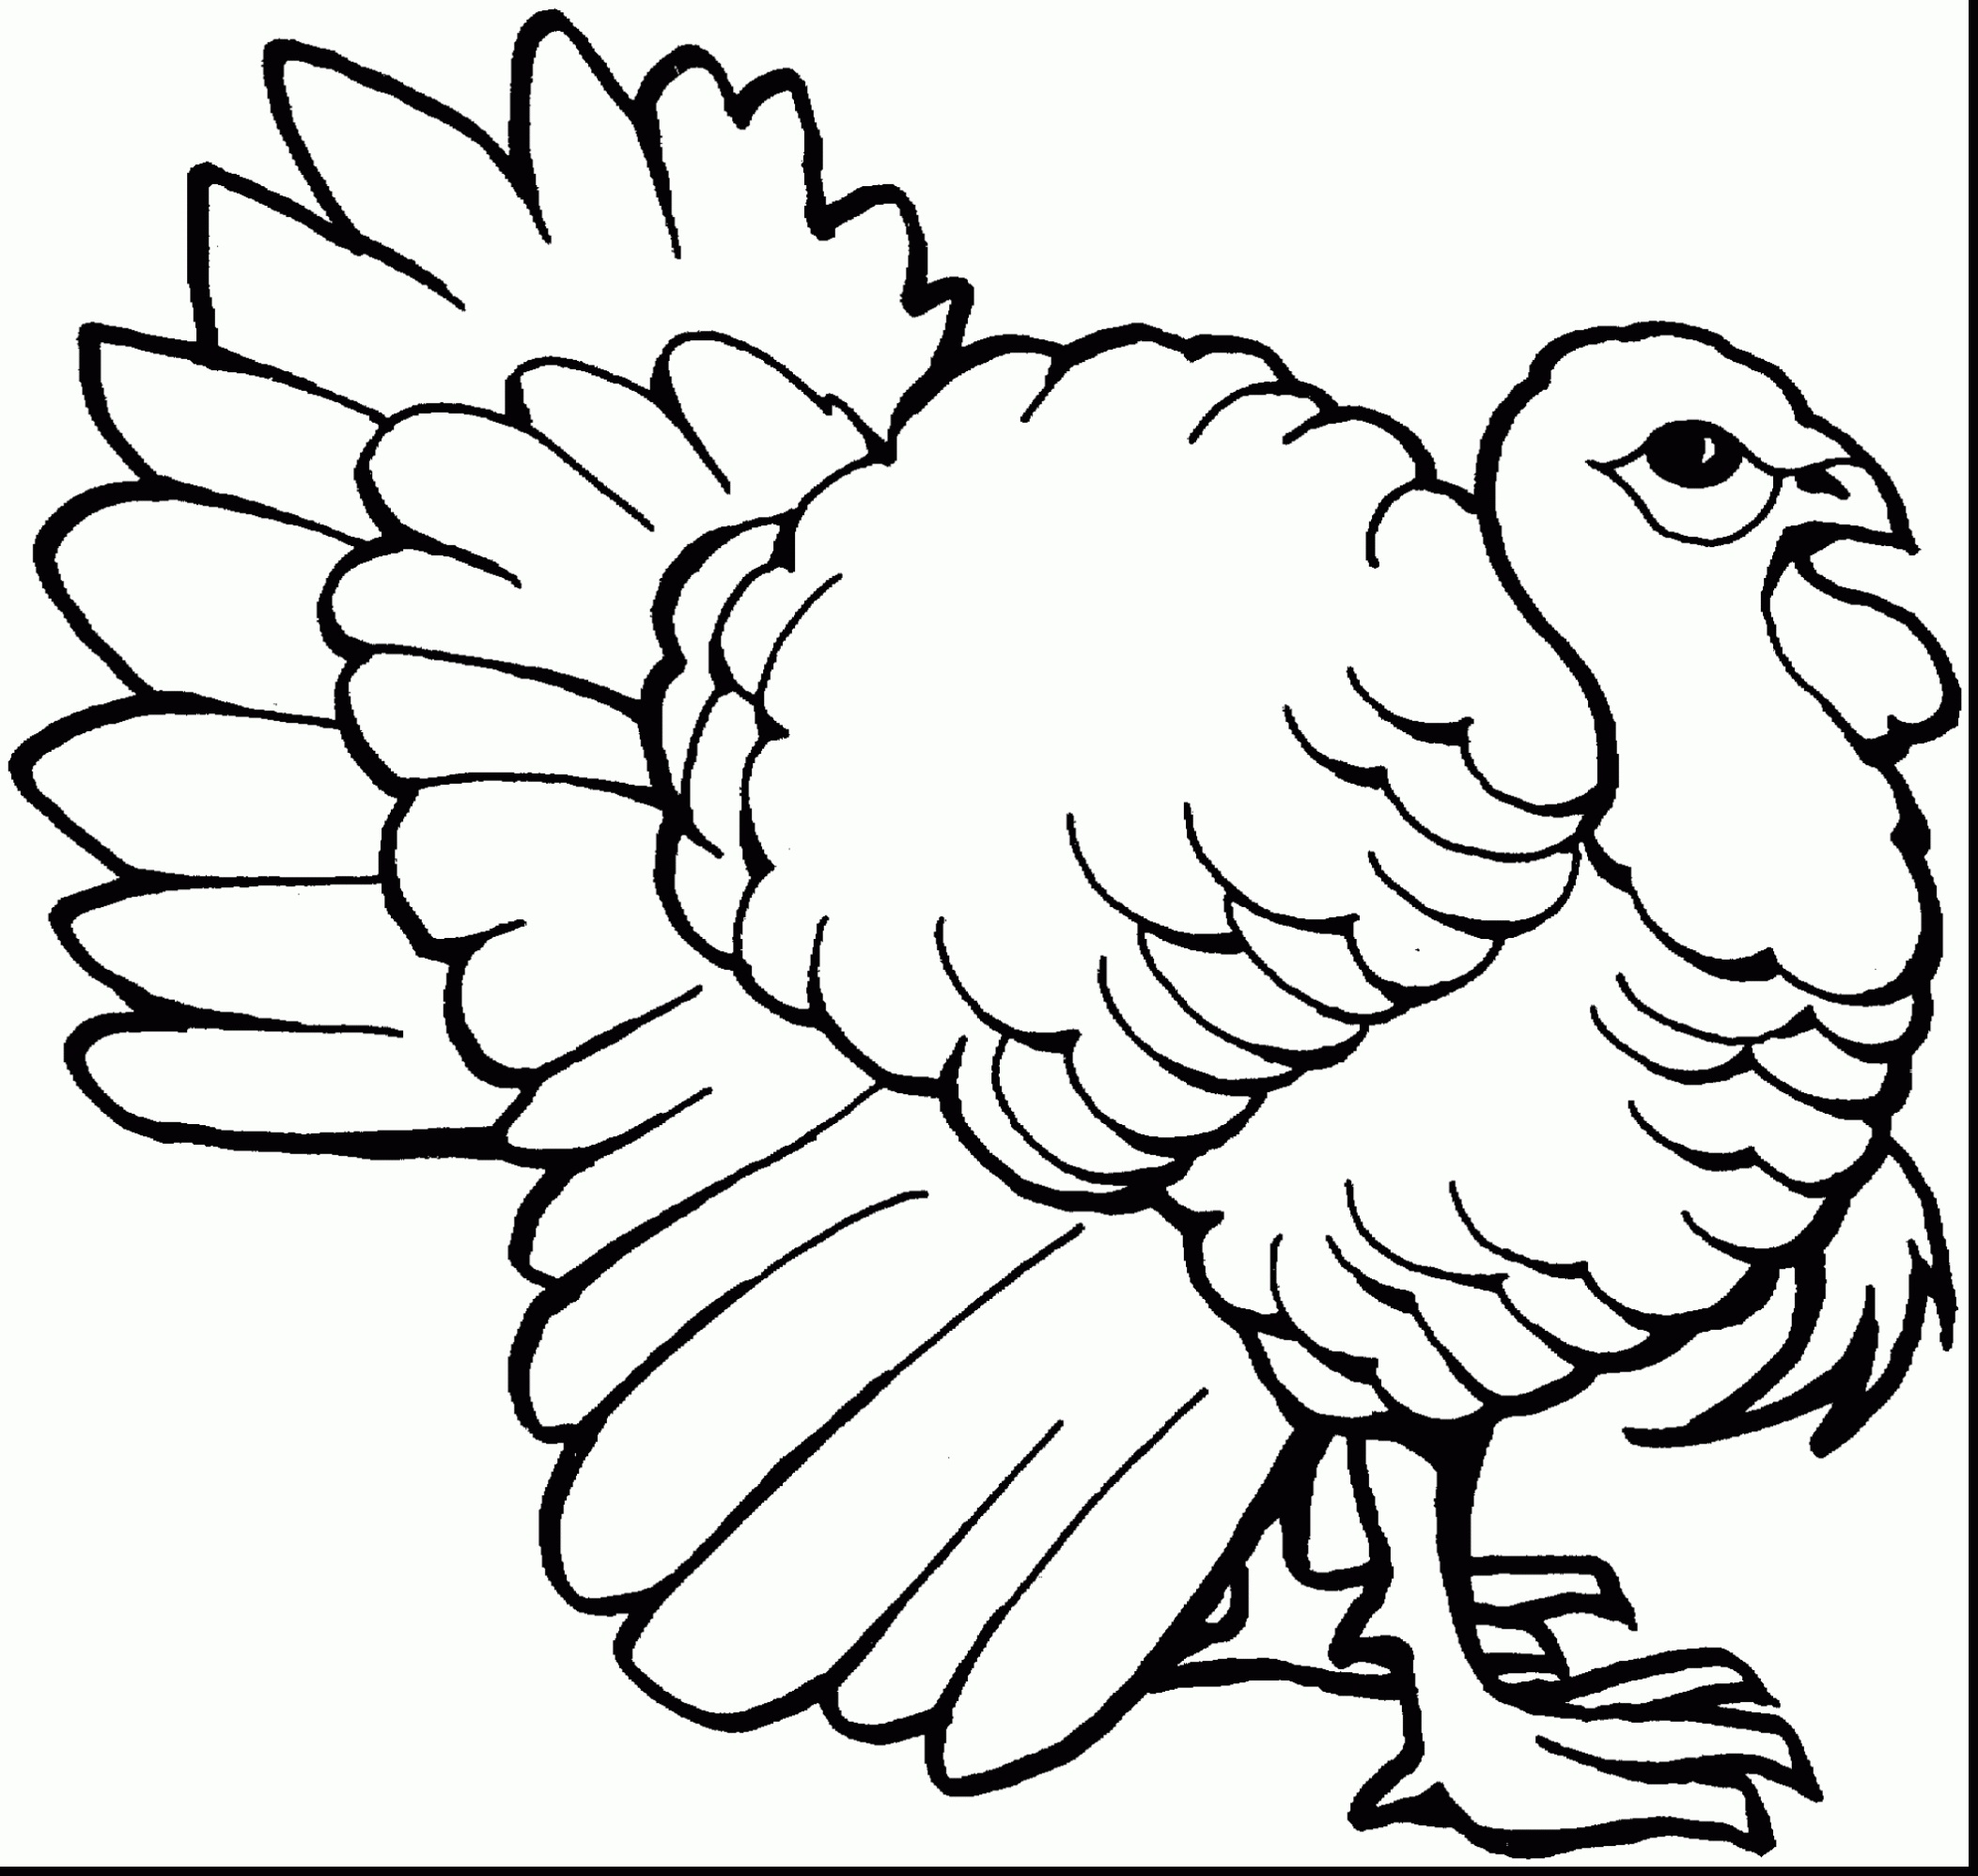 Coloring Ideas : Kidsoring Turkey Page Thanksgiving Books For First - Free Printable Turkey Coloring Pages